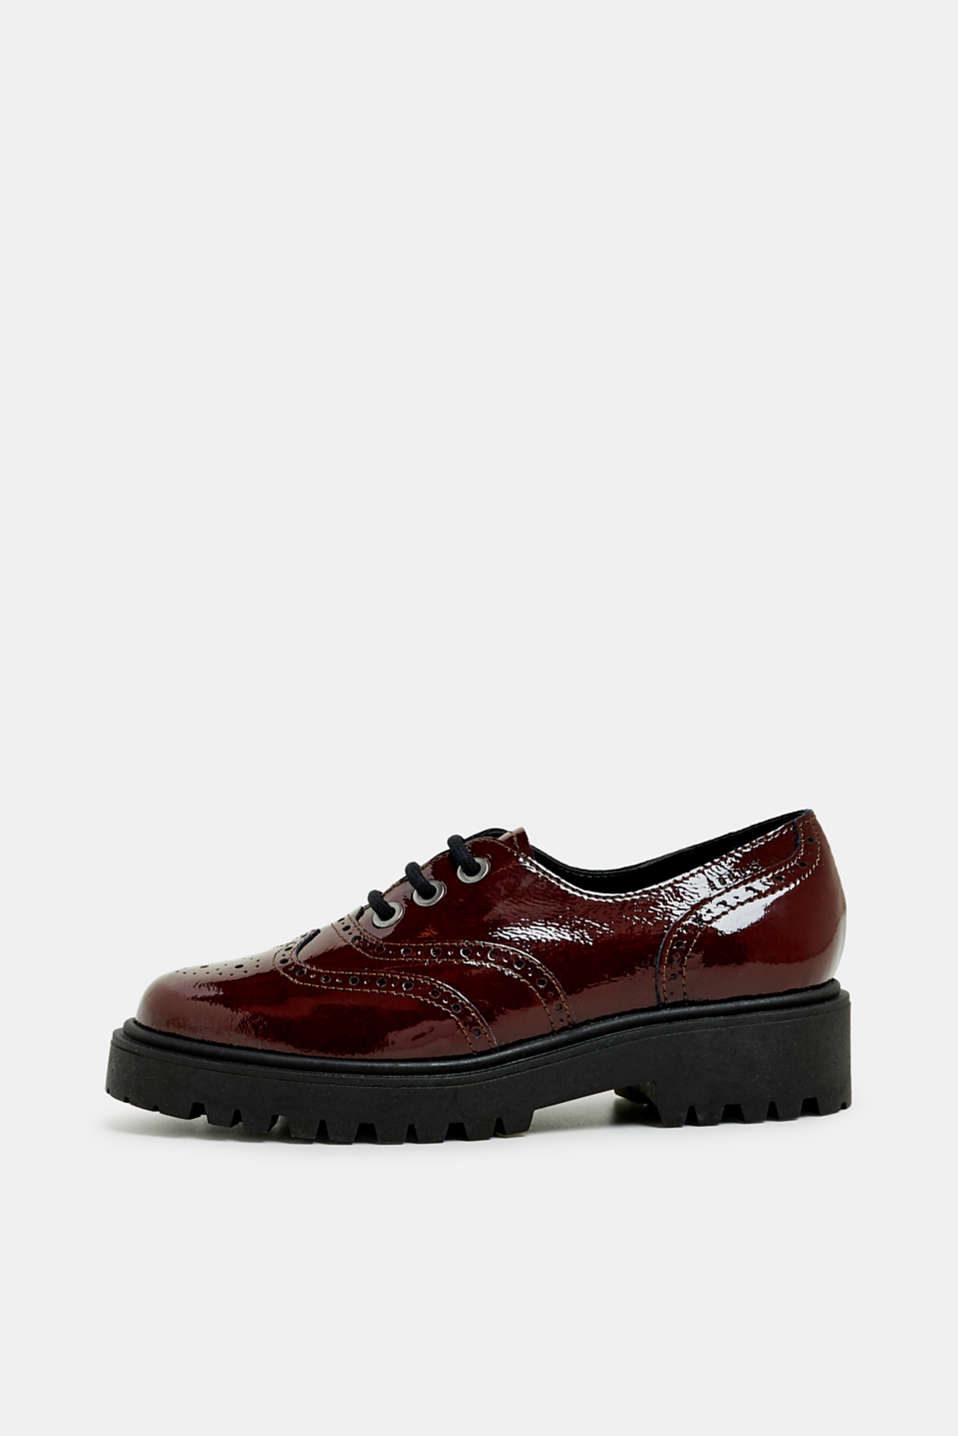 Esprit - Creepers mit Budapester-Muster, in Lack-Optik